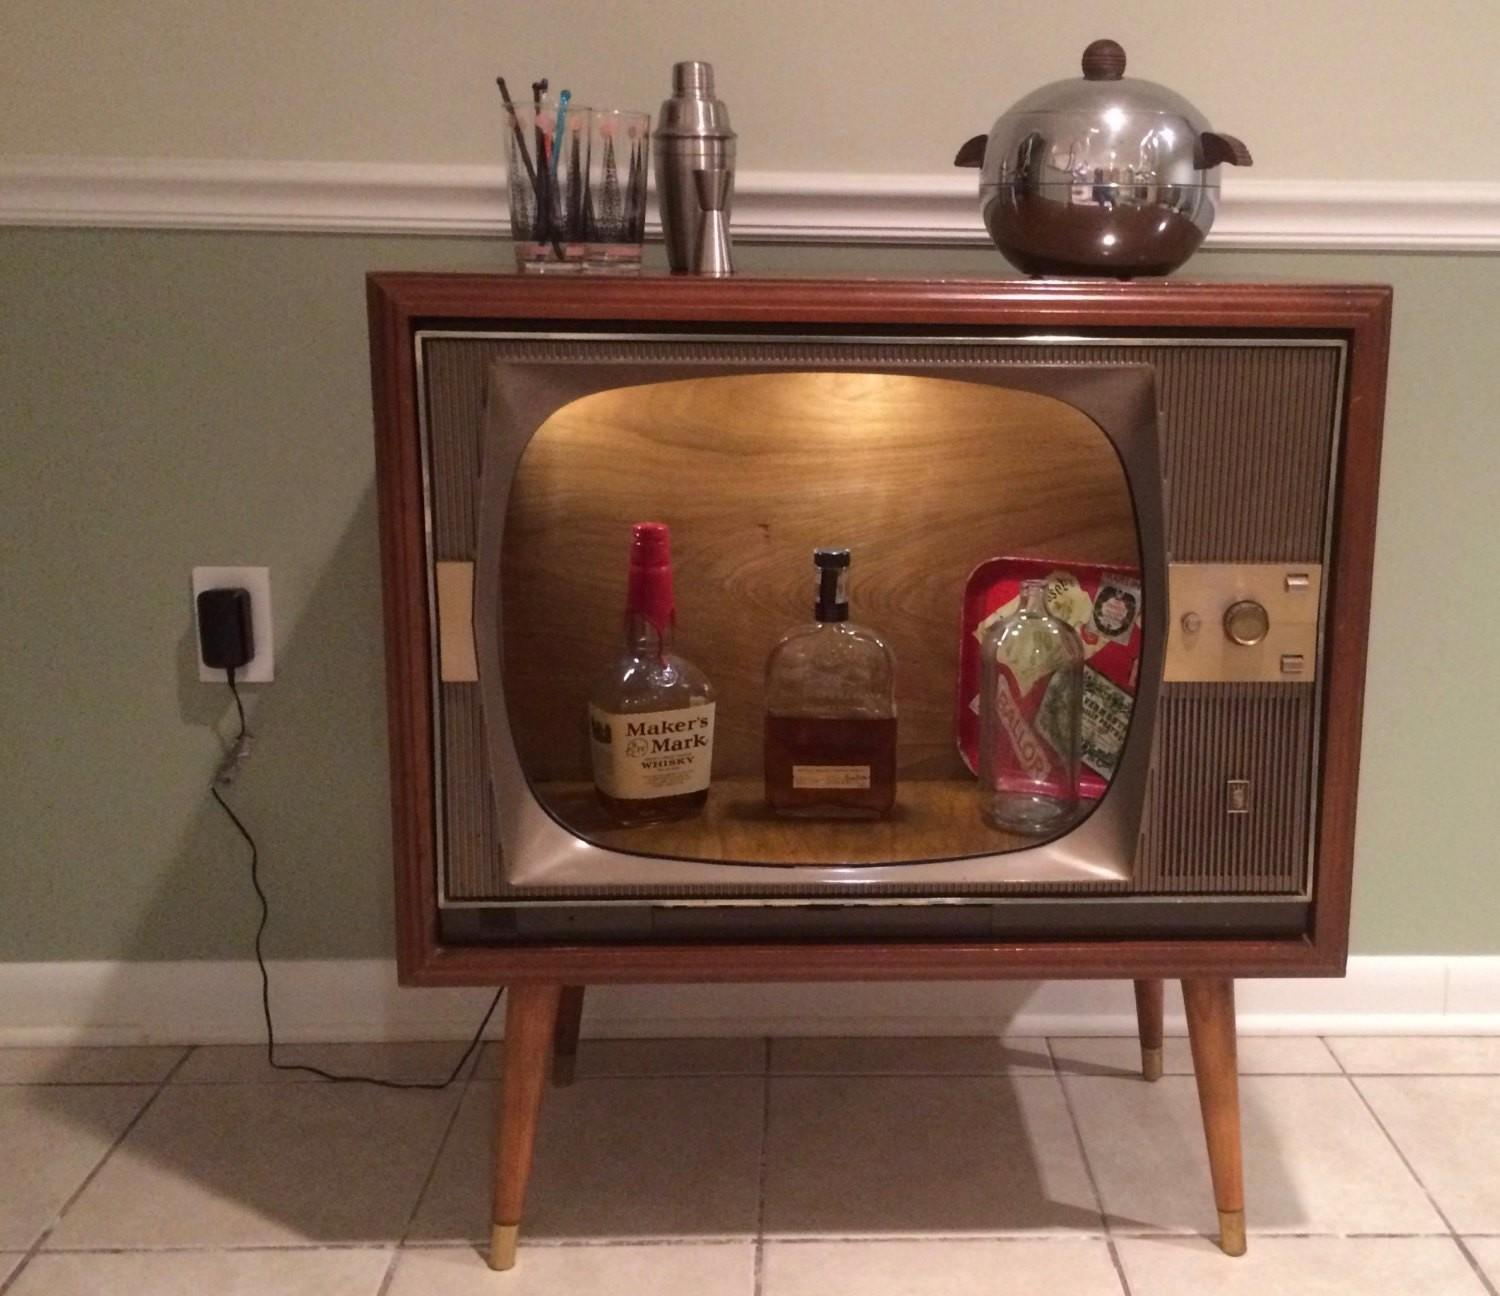 Cycled Vintage Zenith Super Console Television